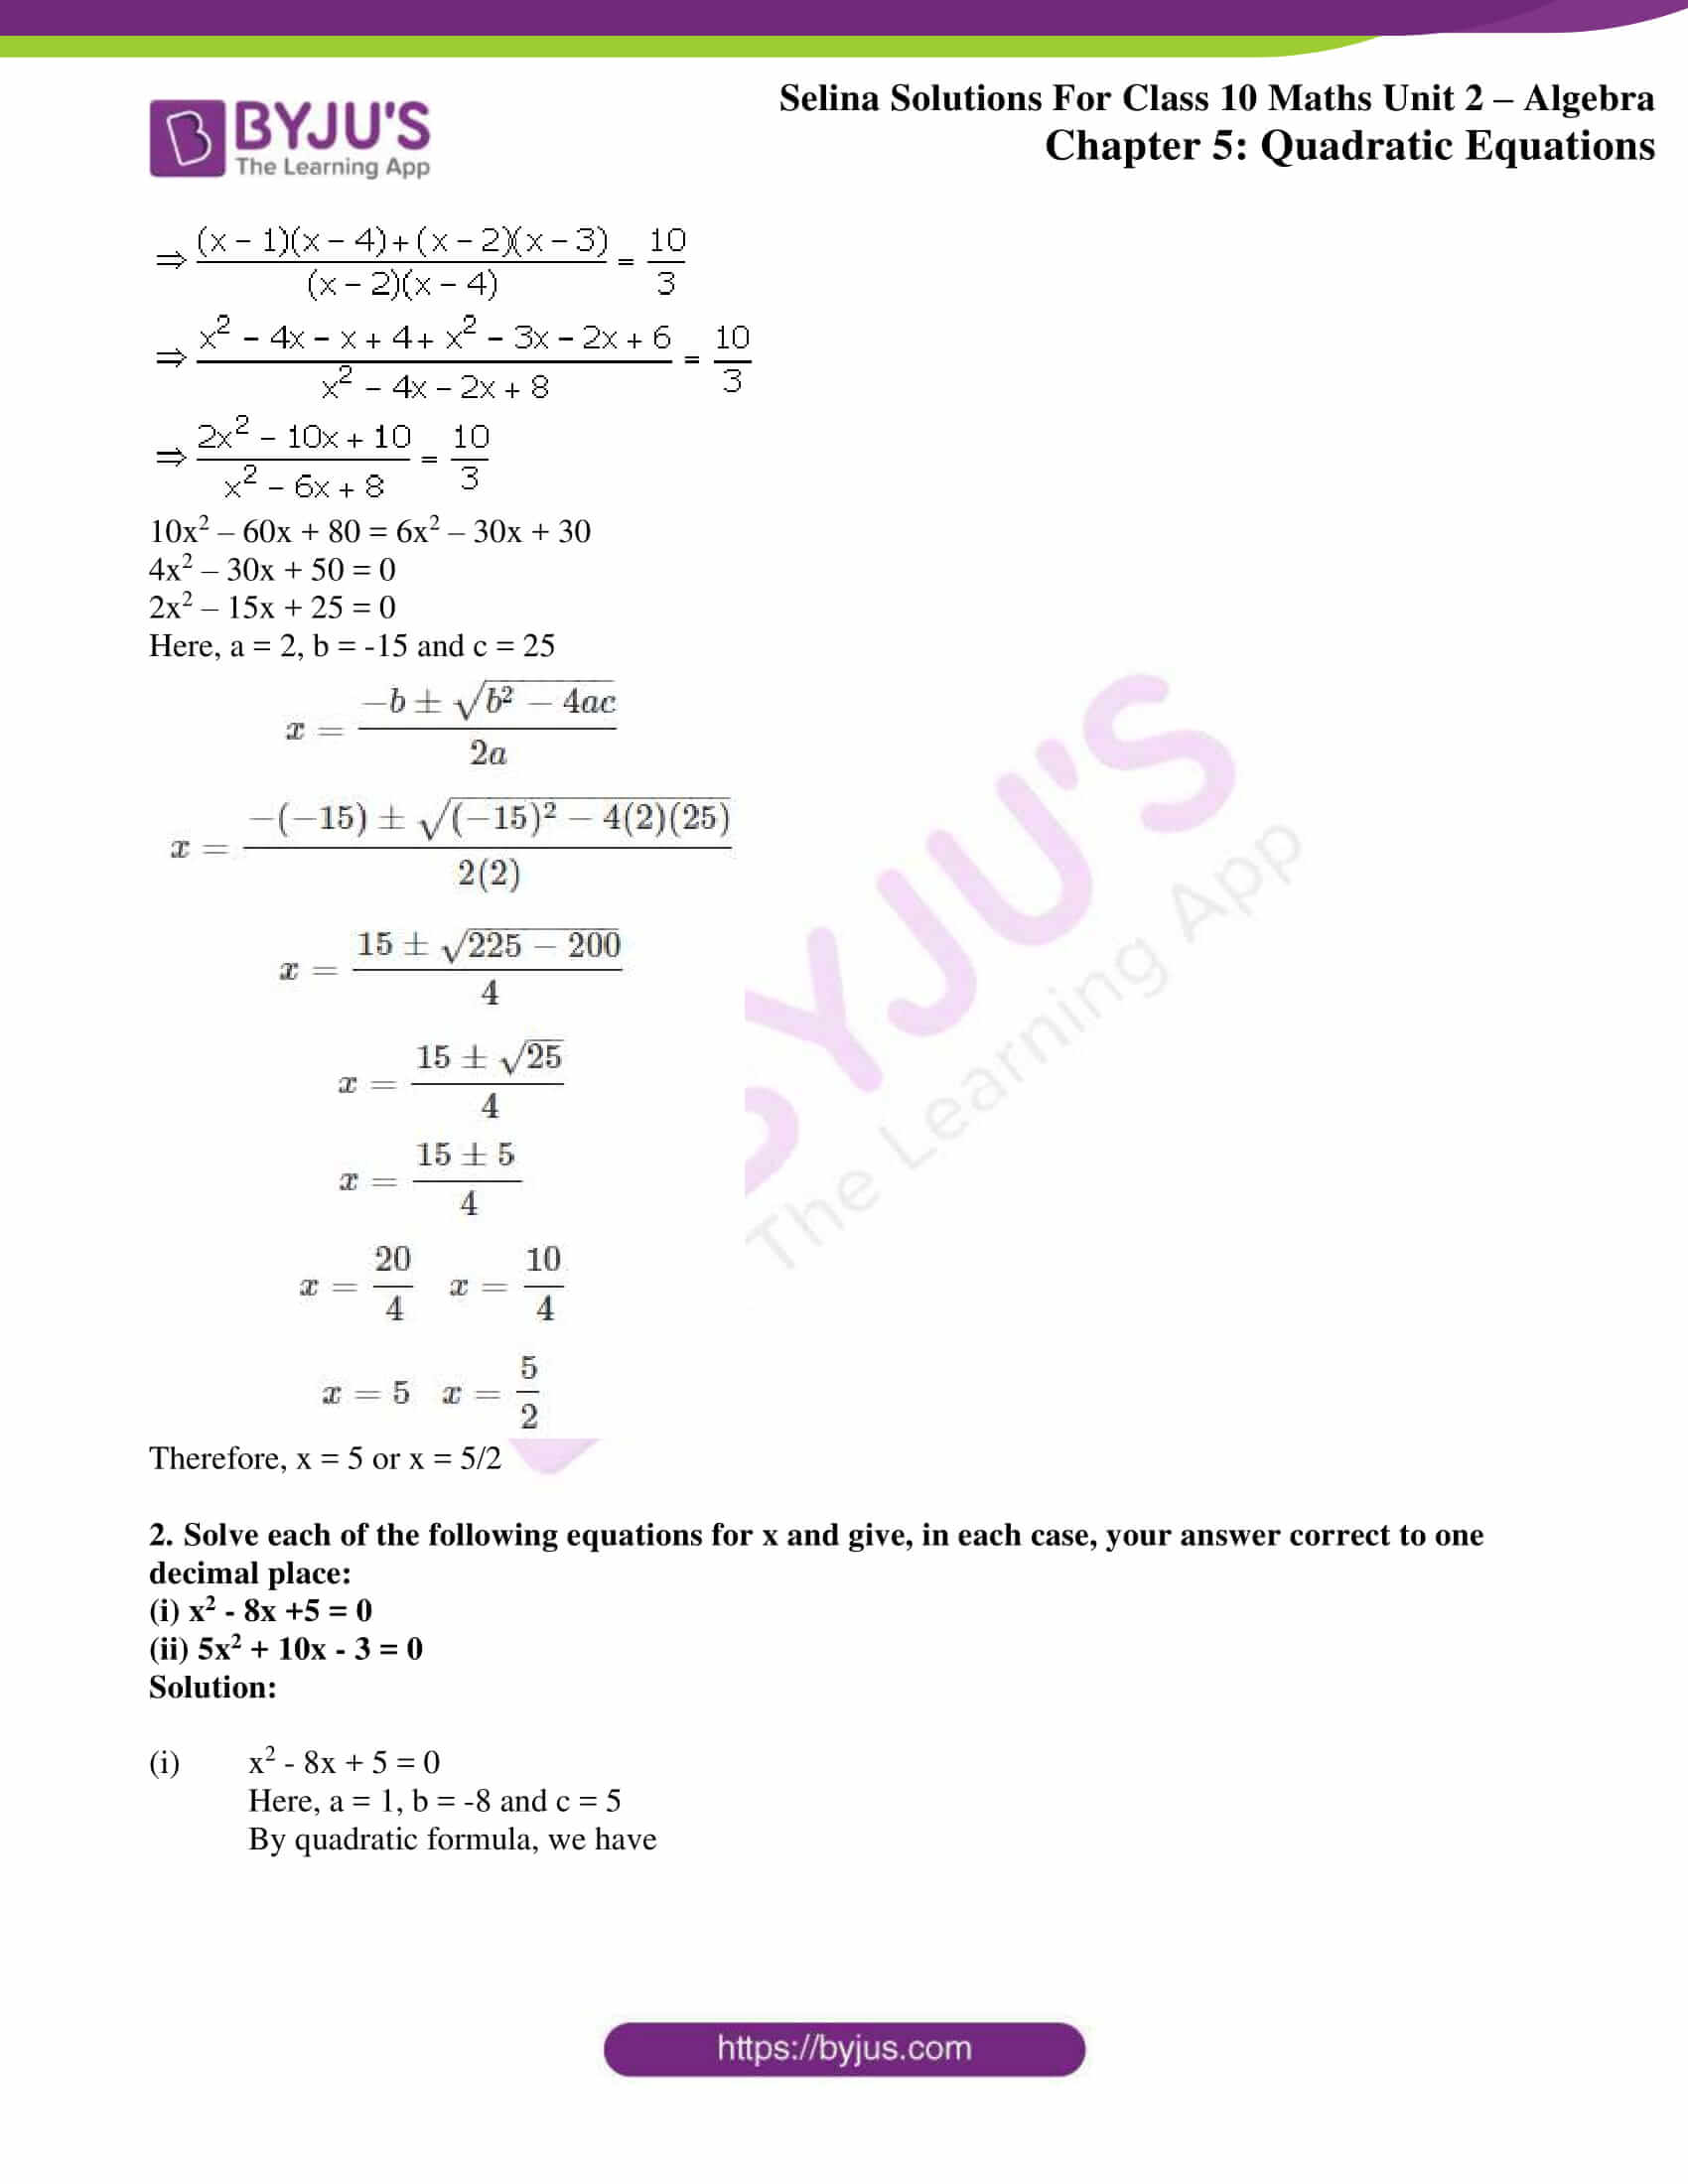 selina solution concise maths class 10 chapter 5d